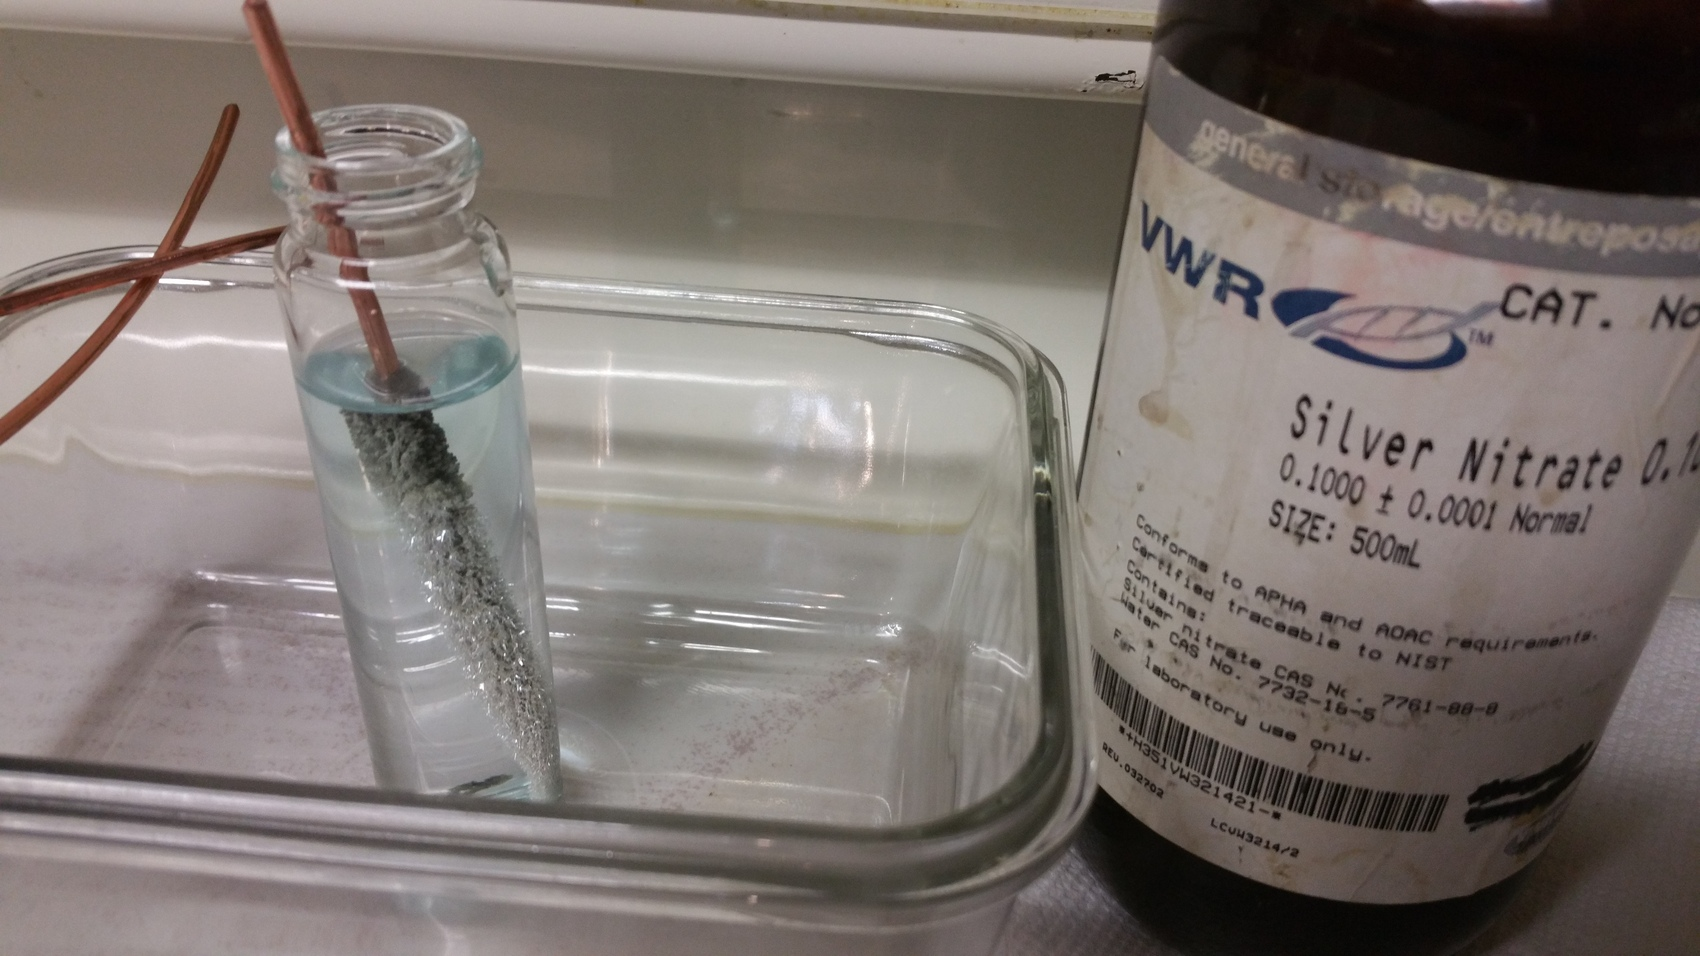 silver nitrate lab Chemistry lab copper -- silver nitrate reaction 1 introduction in this experiment you will mass solid silver nitrate (agno 3) and prepare a water solution of it.